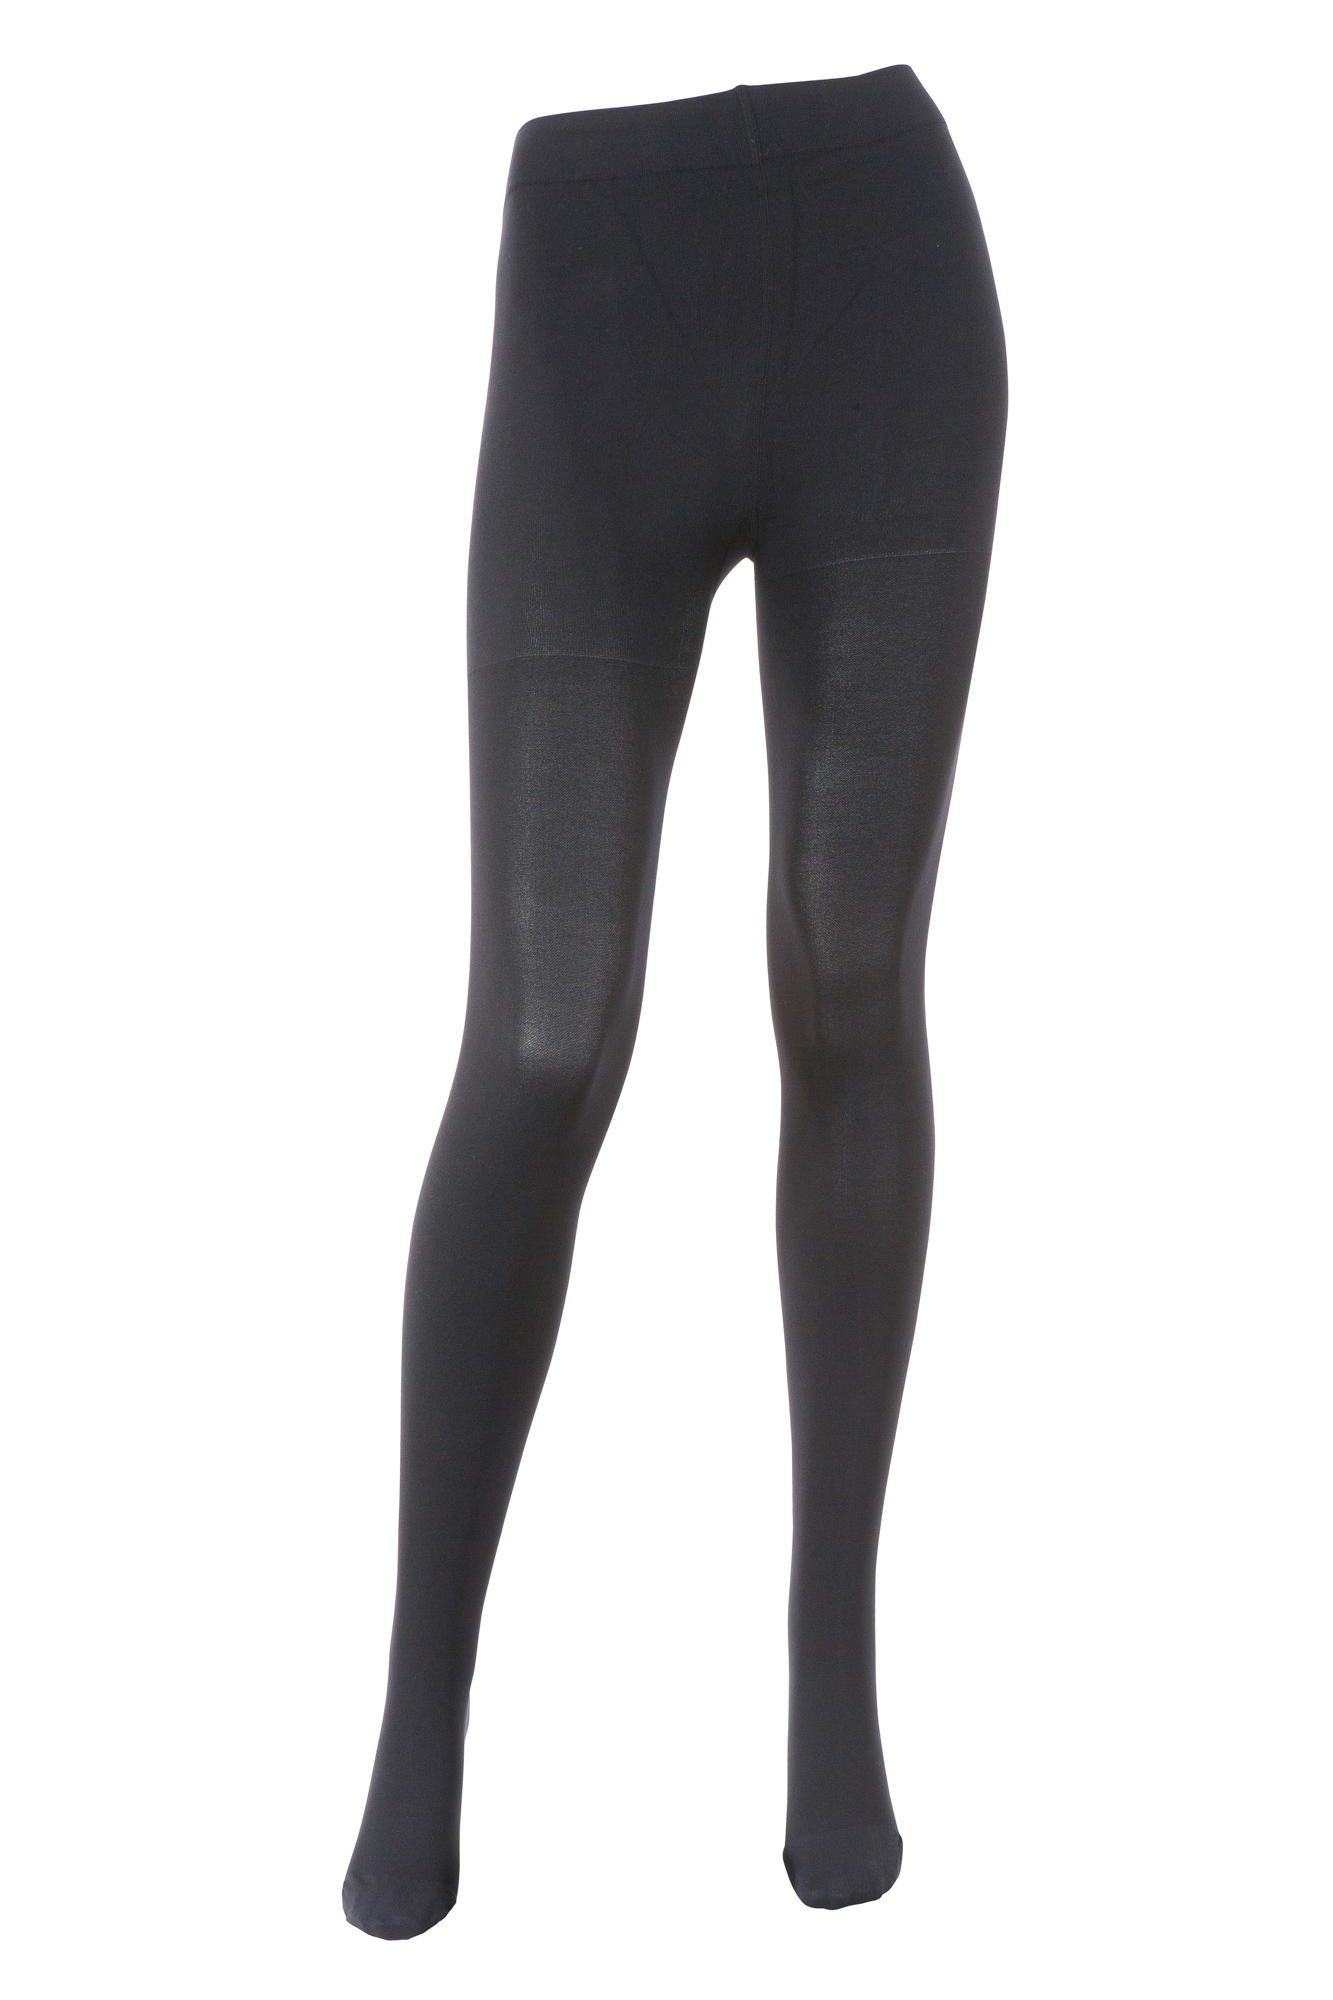 Sigvaris Comfort Class 1 Compression Tights Grey MED Regular Normal Open Toe